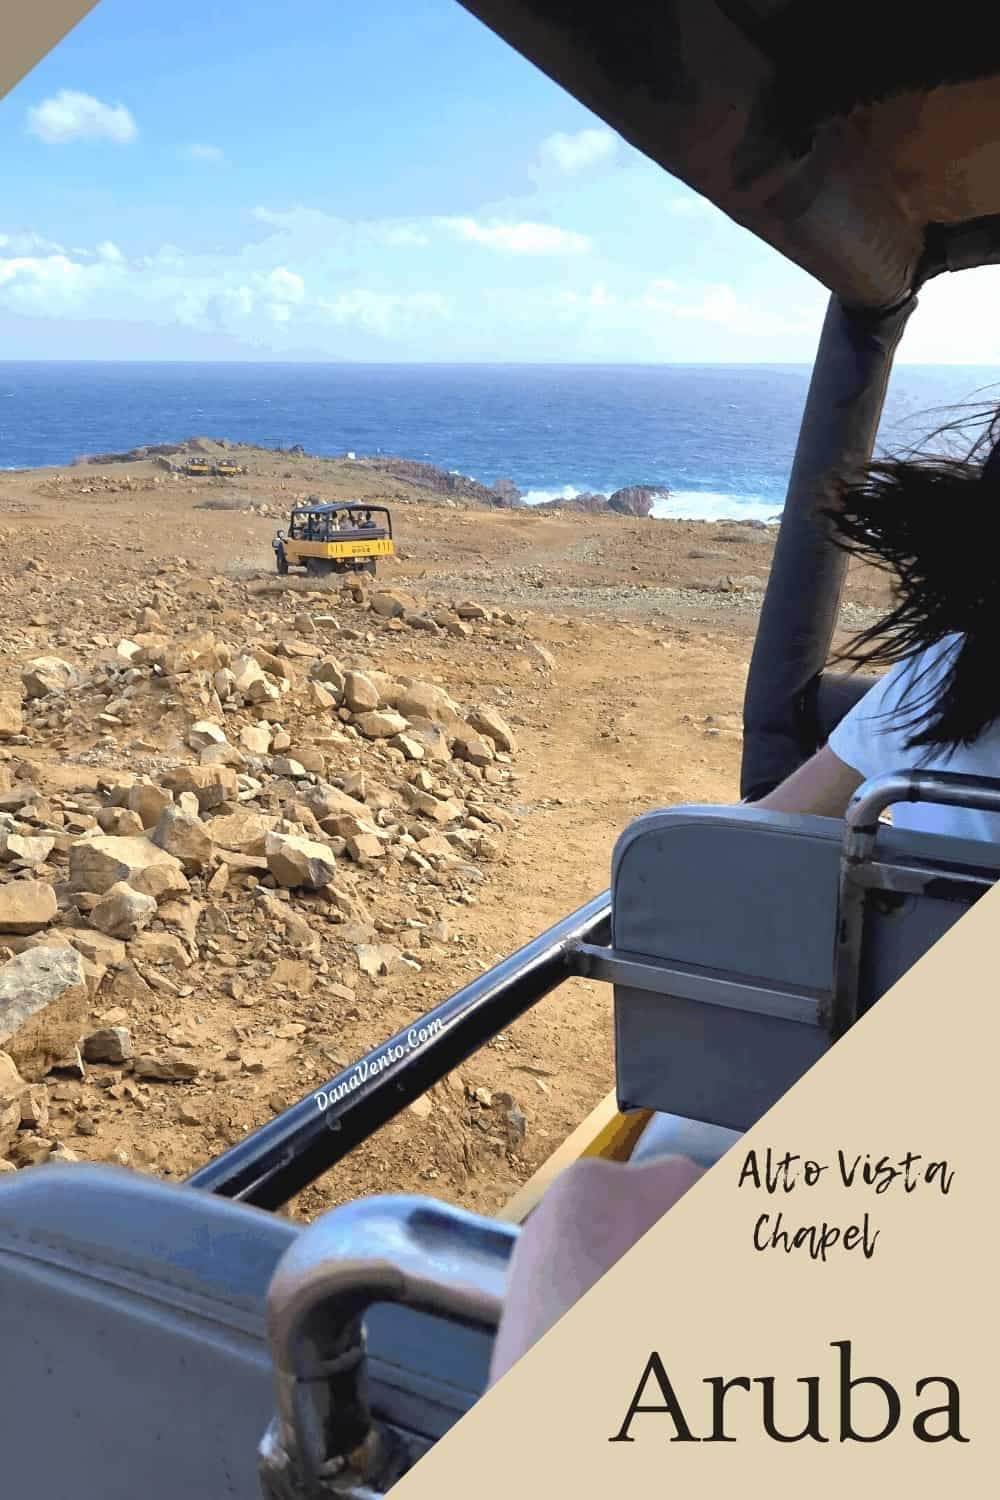 Rugged terrain in Aruba Safari